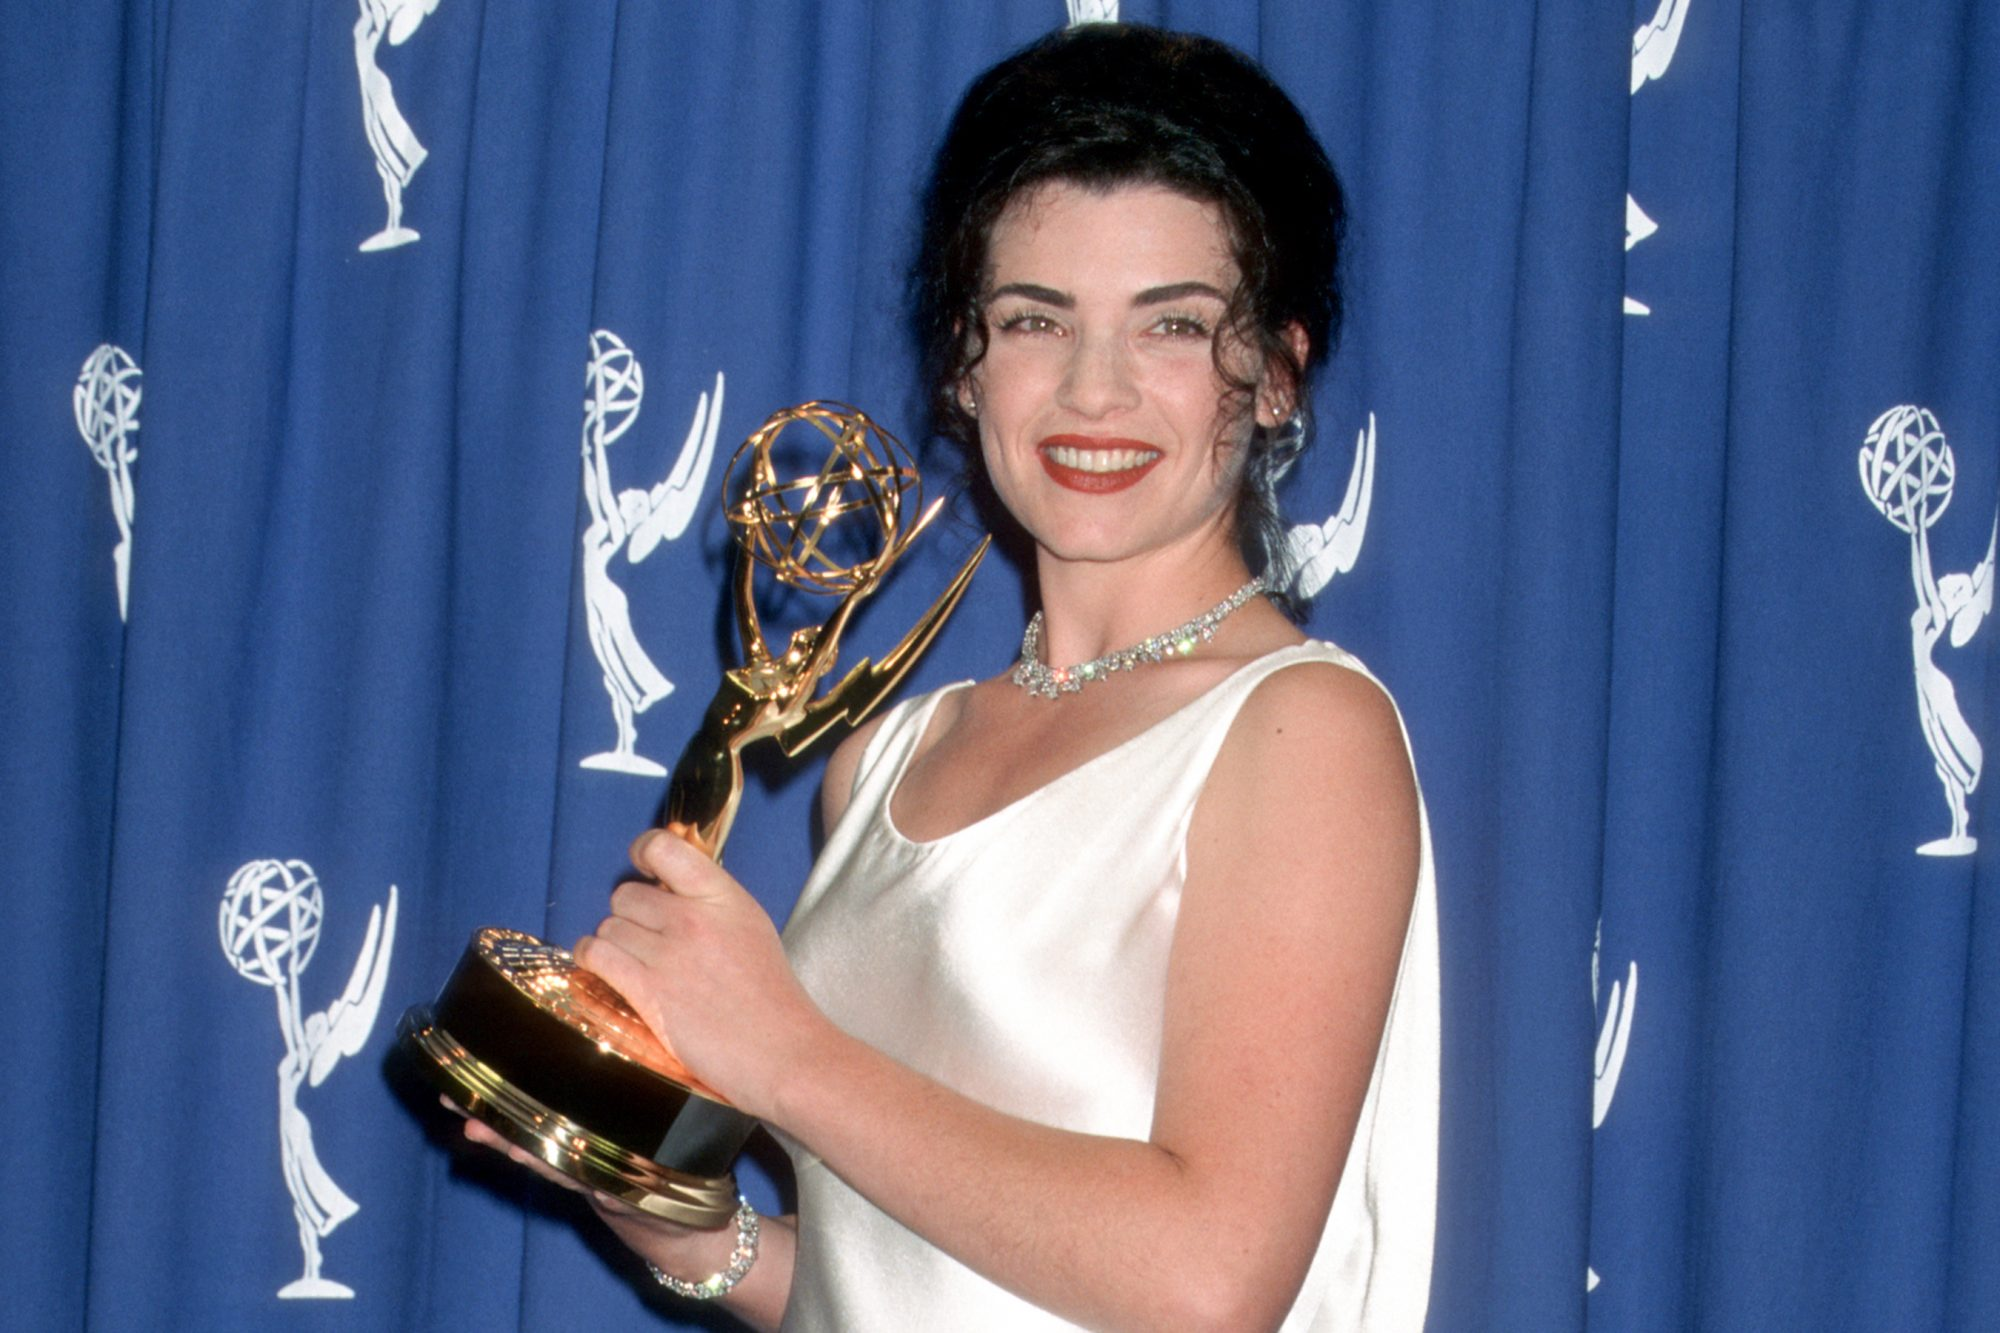 47th Annual Emmy Awards - Arrivals